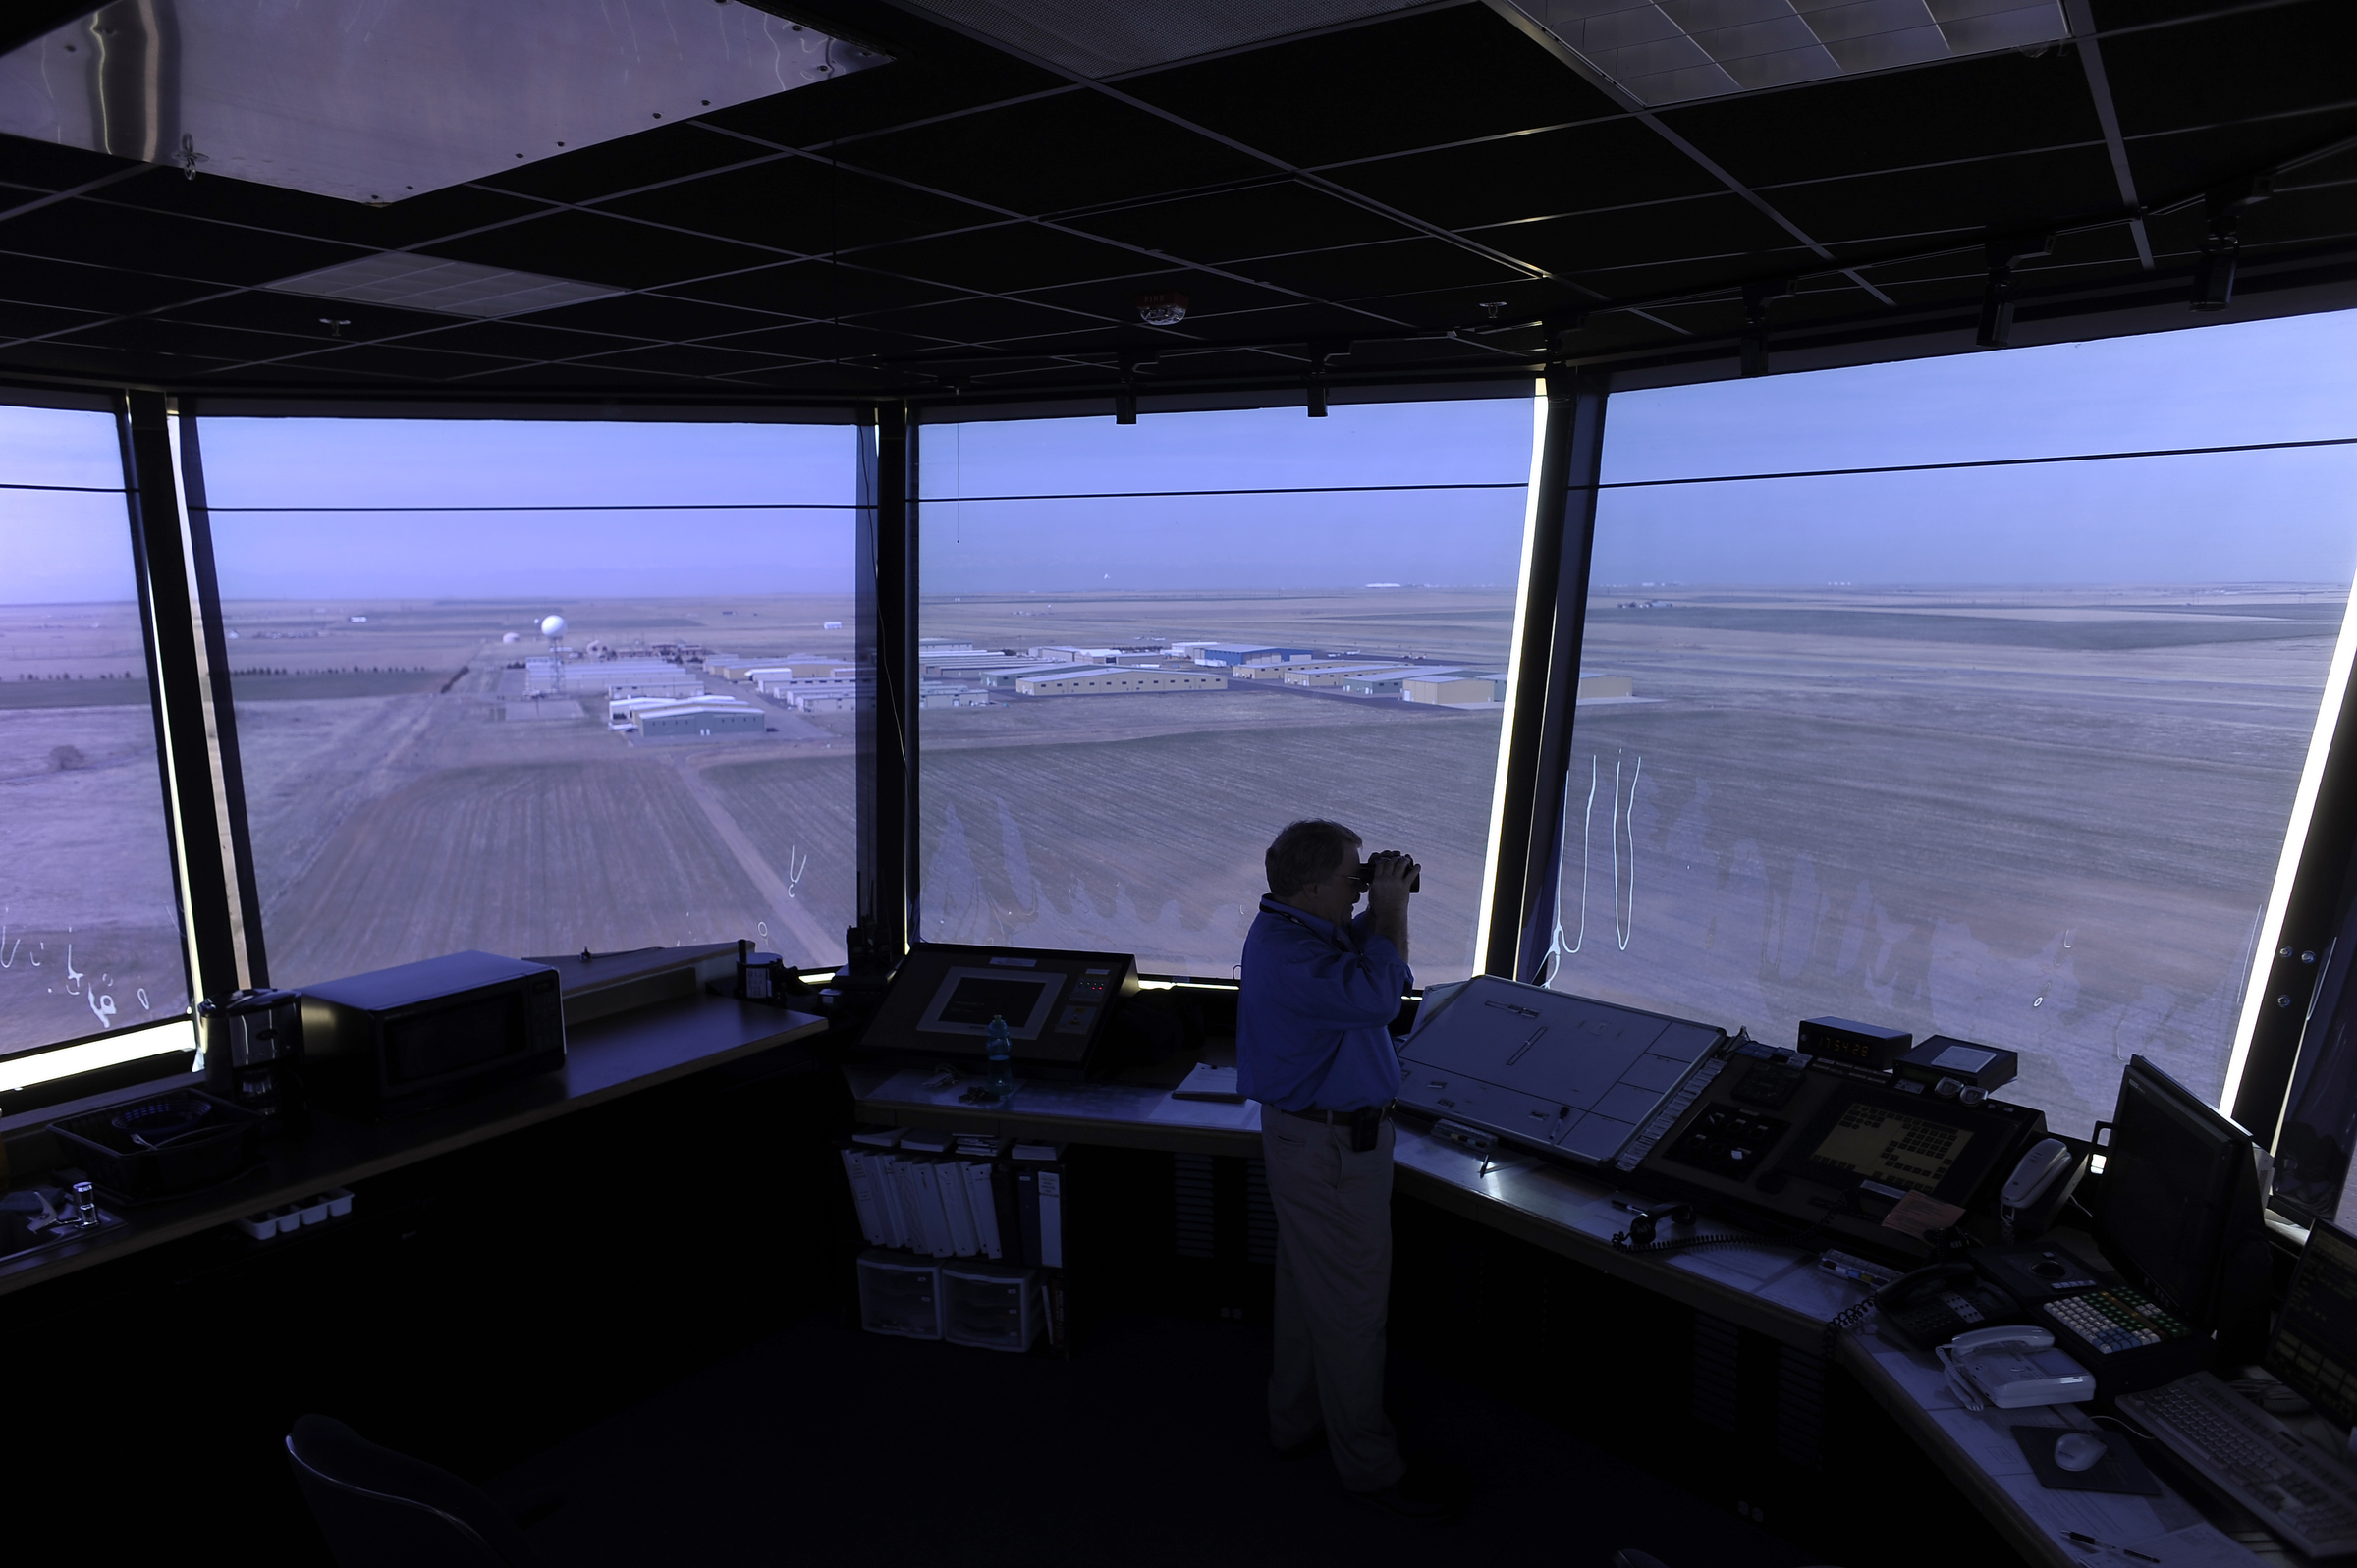 Donald Trump Looks to Overhaul the FAA by Privatizing Air Traffic Control